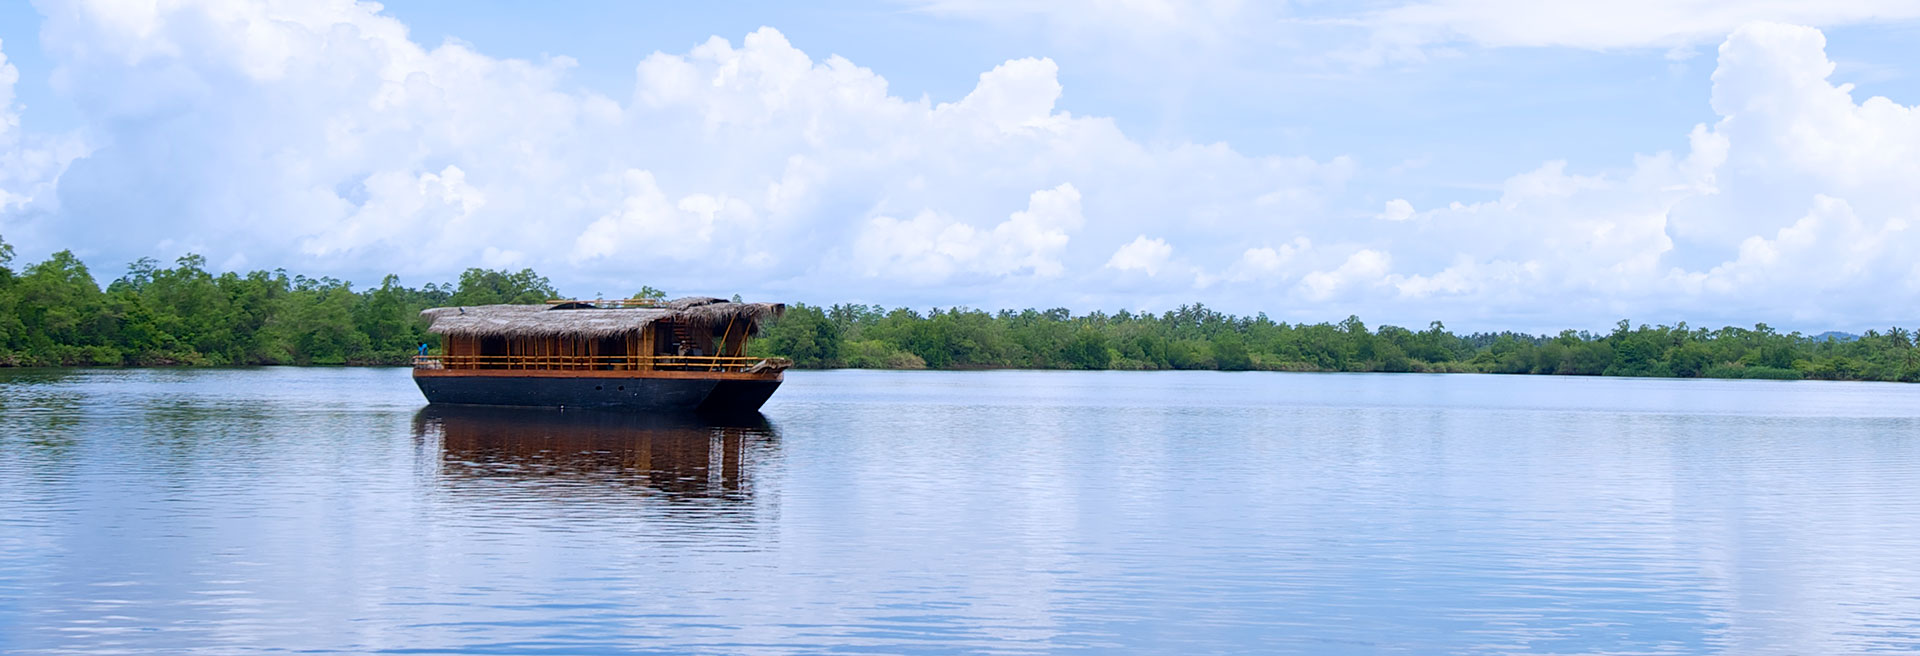 scenic view of the boathouse on the bentota river